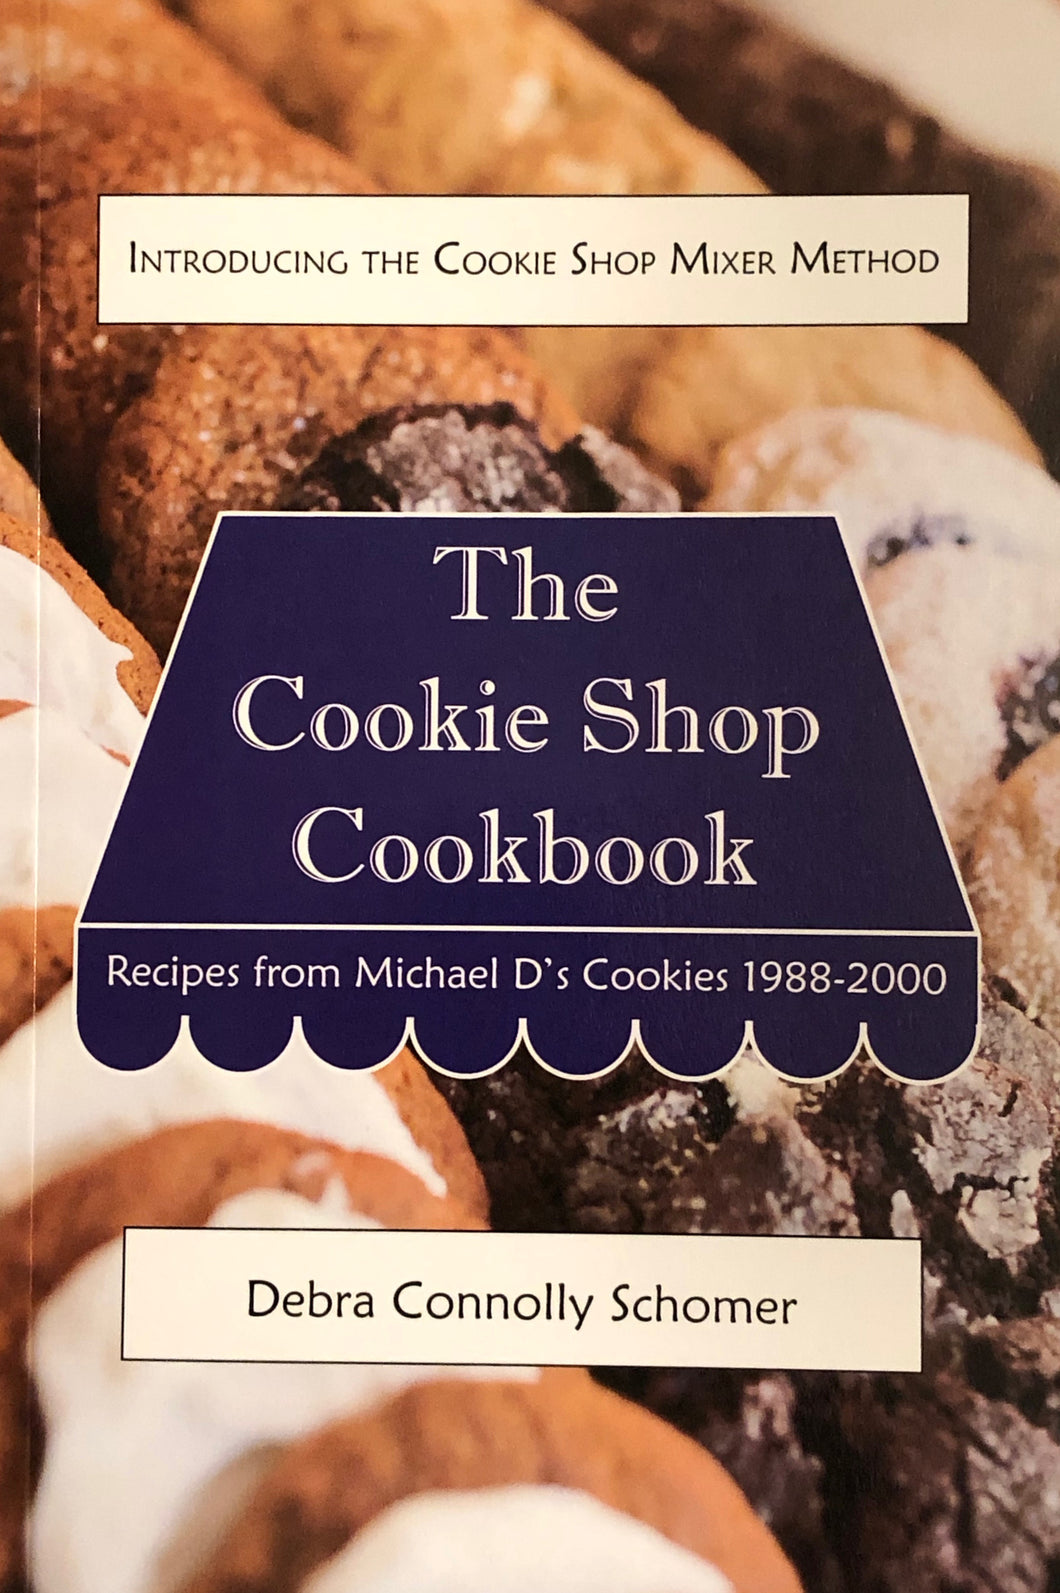 The Cookie Shop Cookbook: Recipes from Michael D's Cookies 1988-2000 by Debra Connolly Schomer